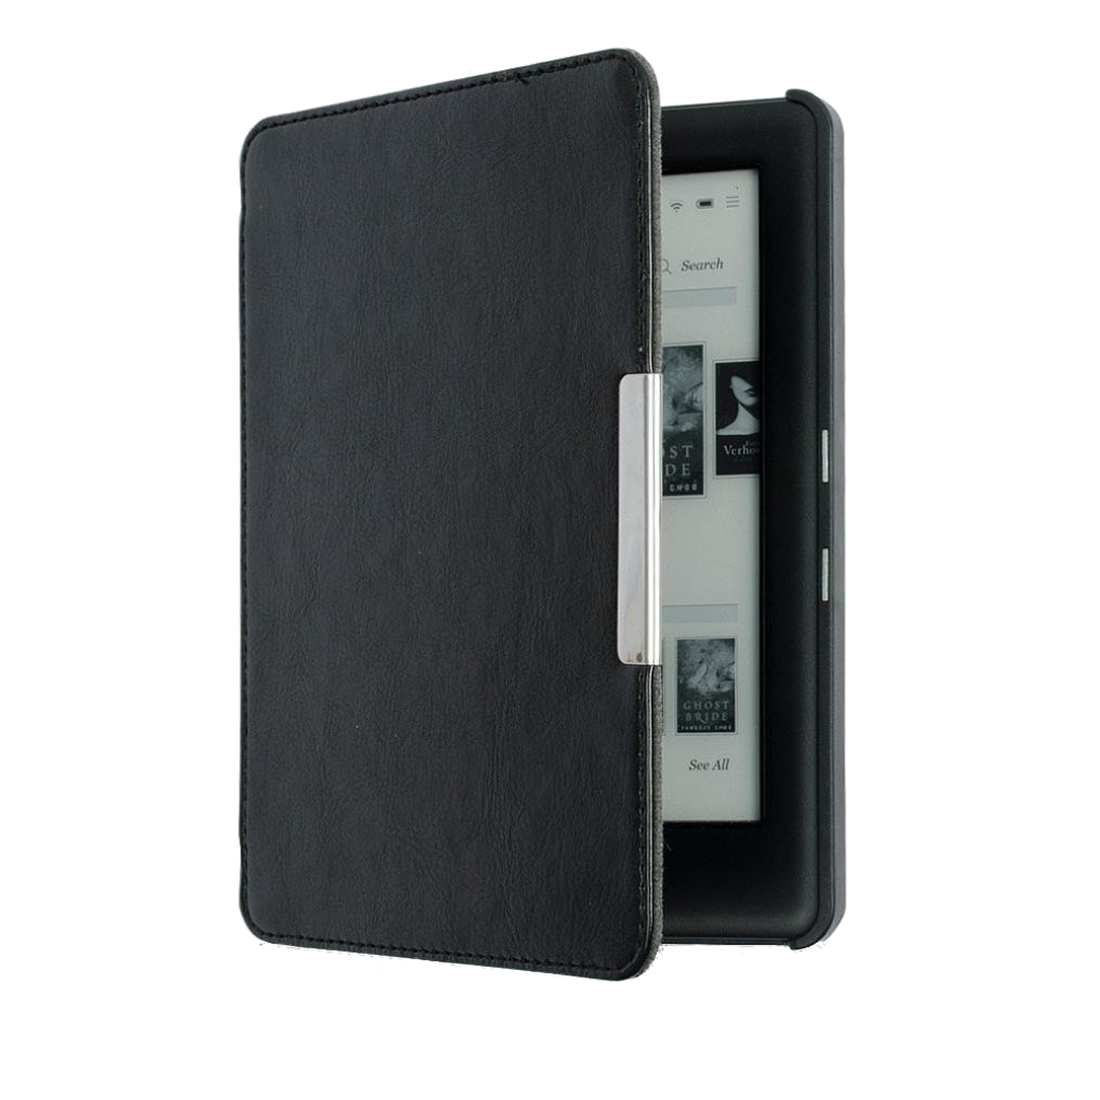 Case for KOBO GLO HD 6.0 eReader Magnetic Auto Sleep Cover Ultra Thin Hard Shell (Black) magnetic auto sleep slim cover case hard shell for kobo glo hd 6 0inch dec21